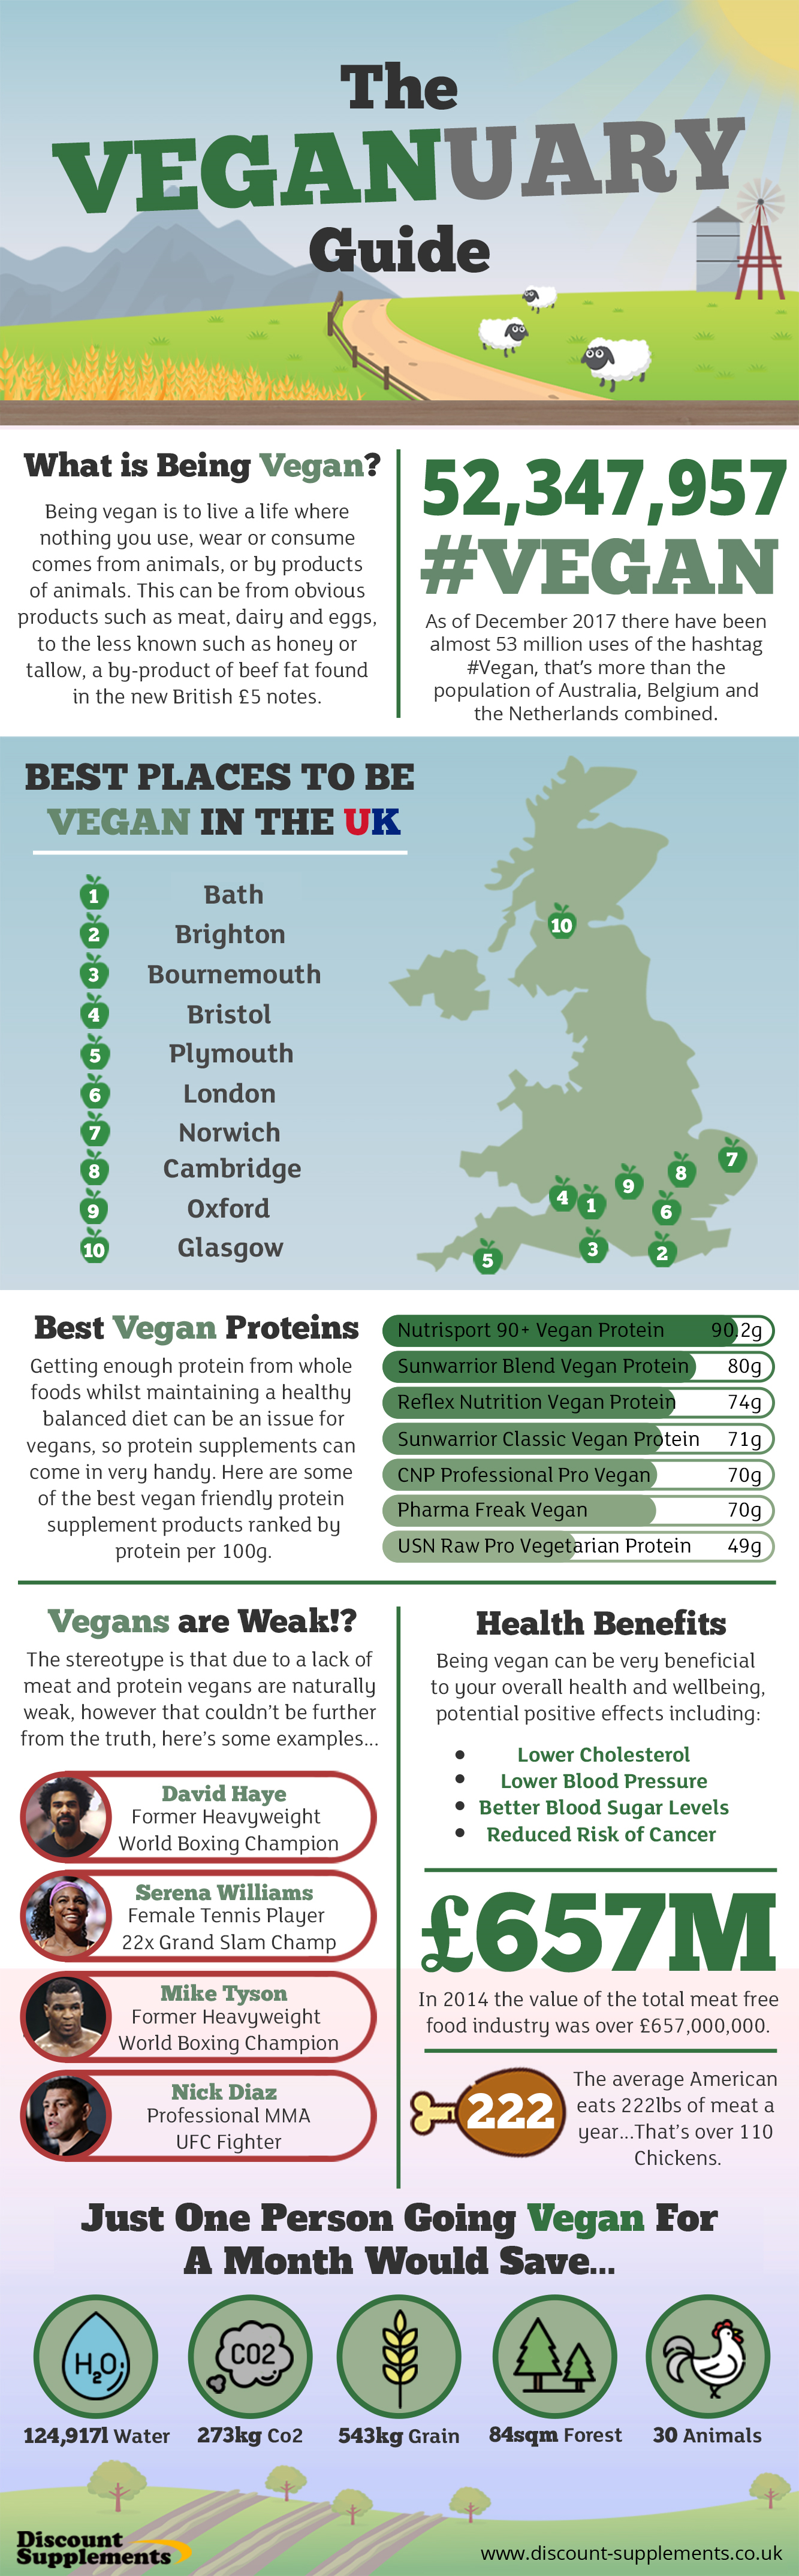 The Veganuary Guide 3